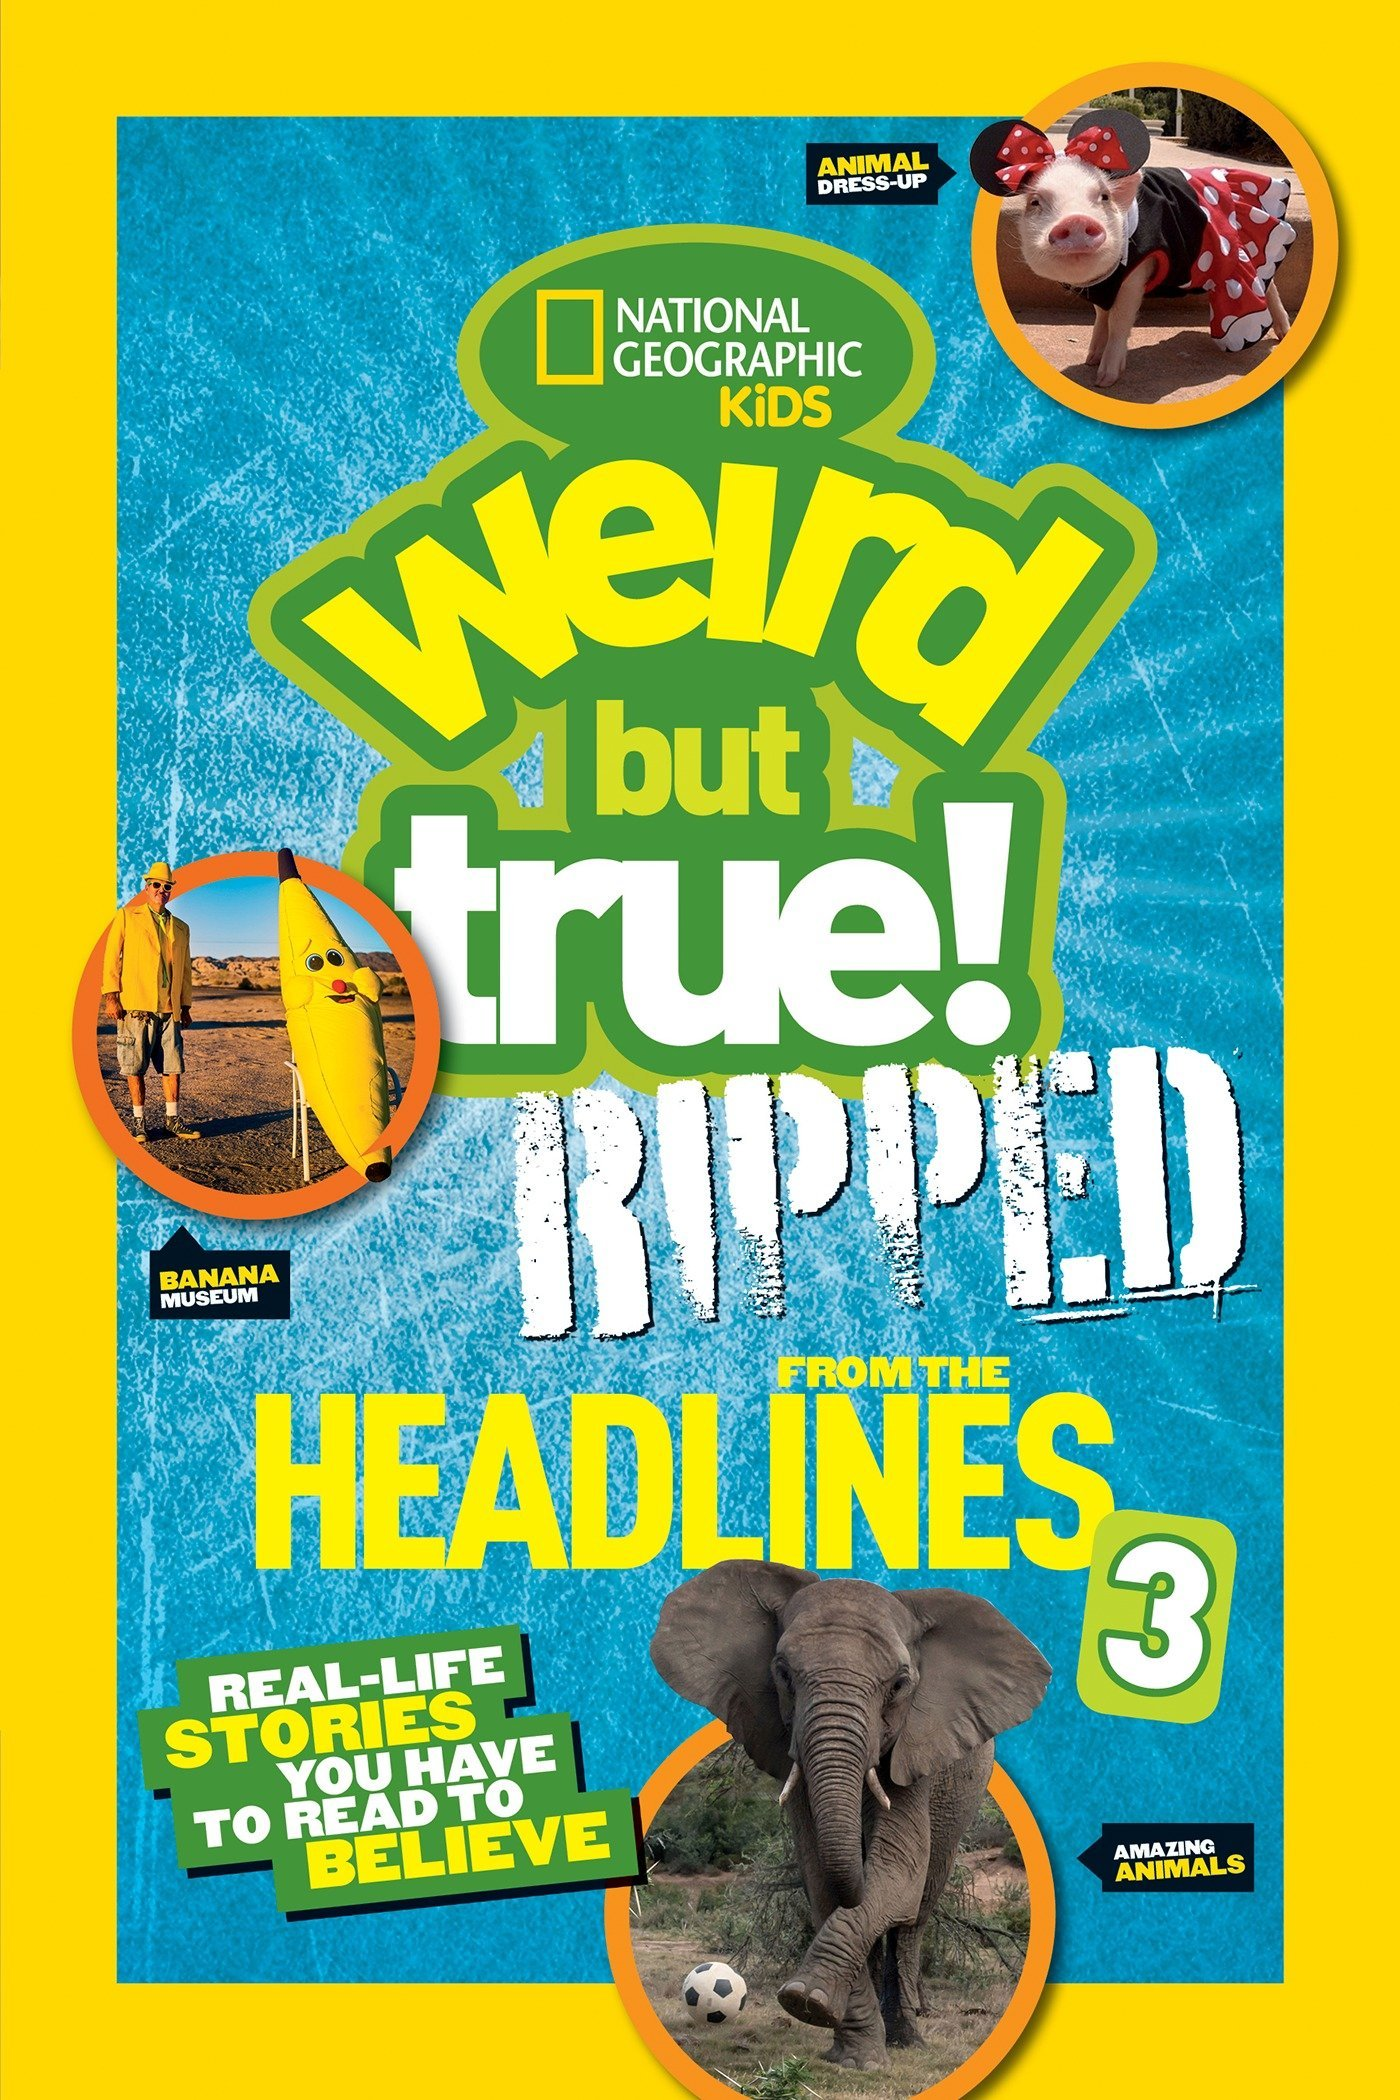 Download National Geographic Kids Weird But True!: Ripped from the Headlines 3: Real-life Stories You Have to Read to Believe PDF